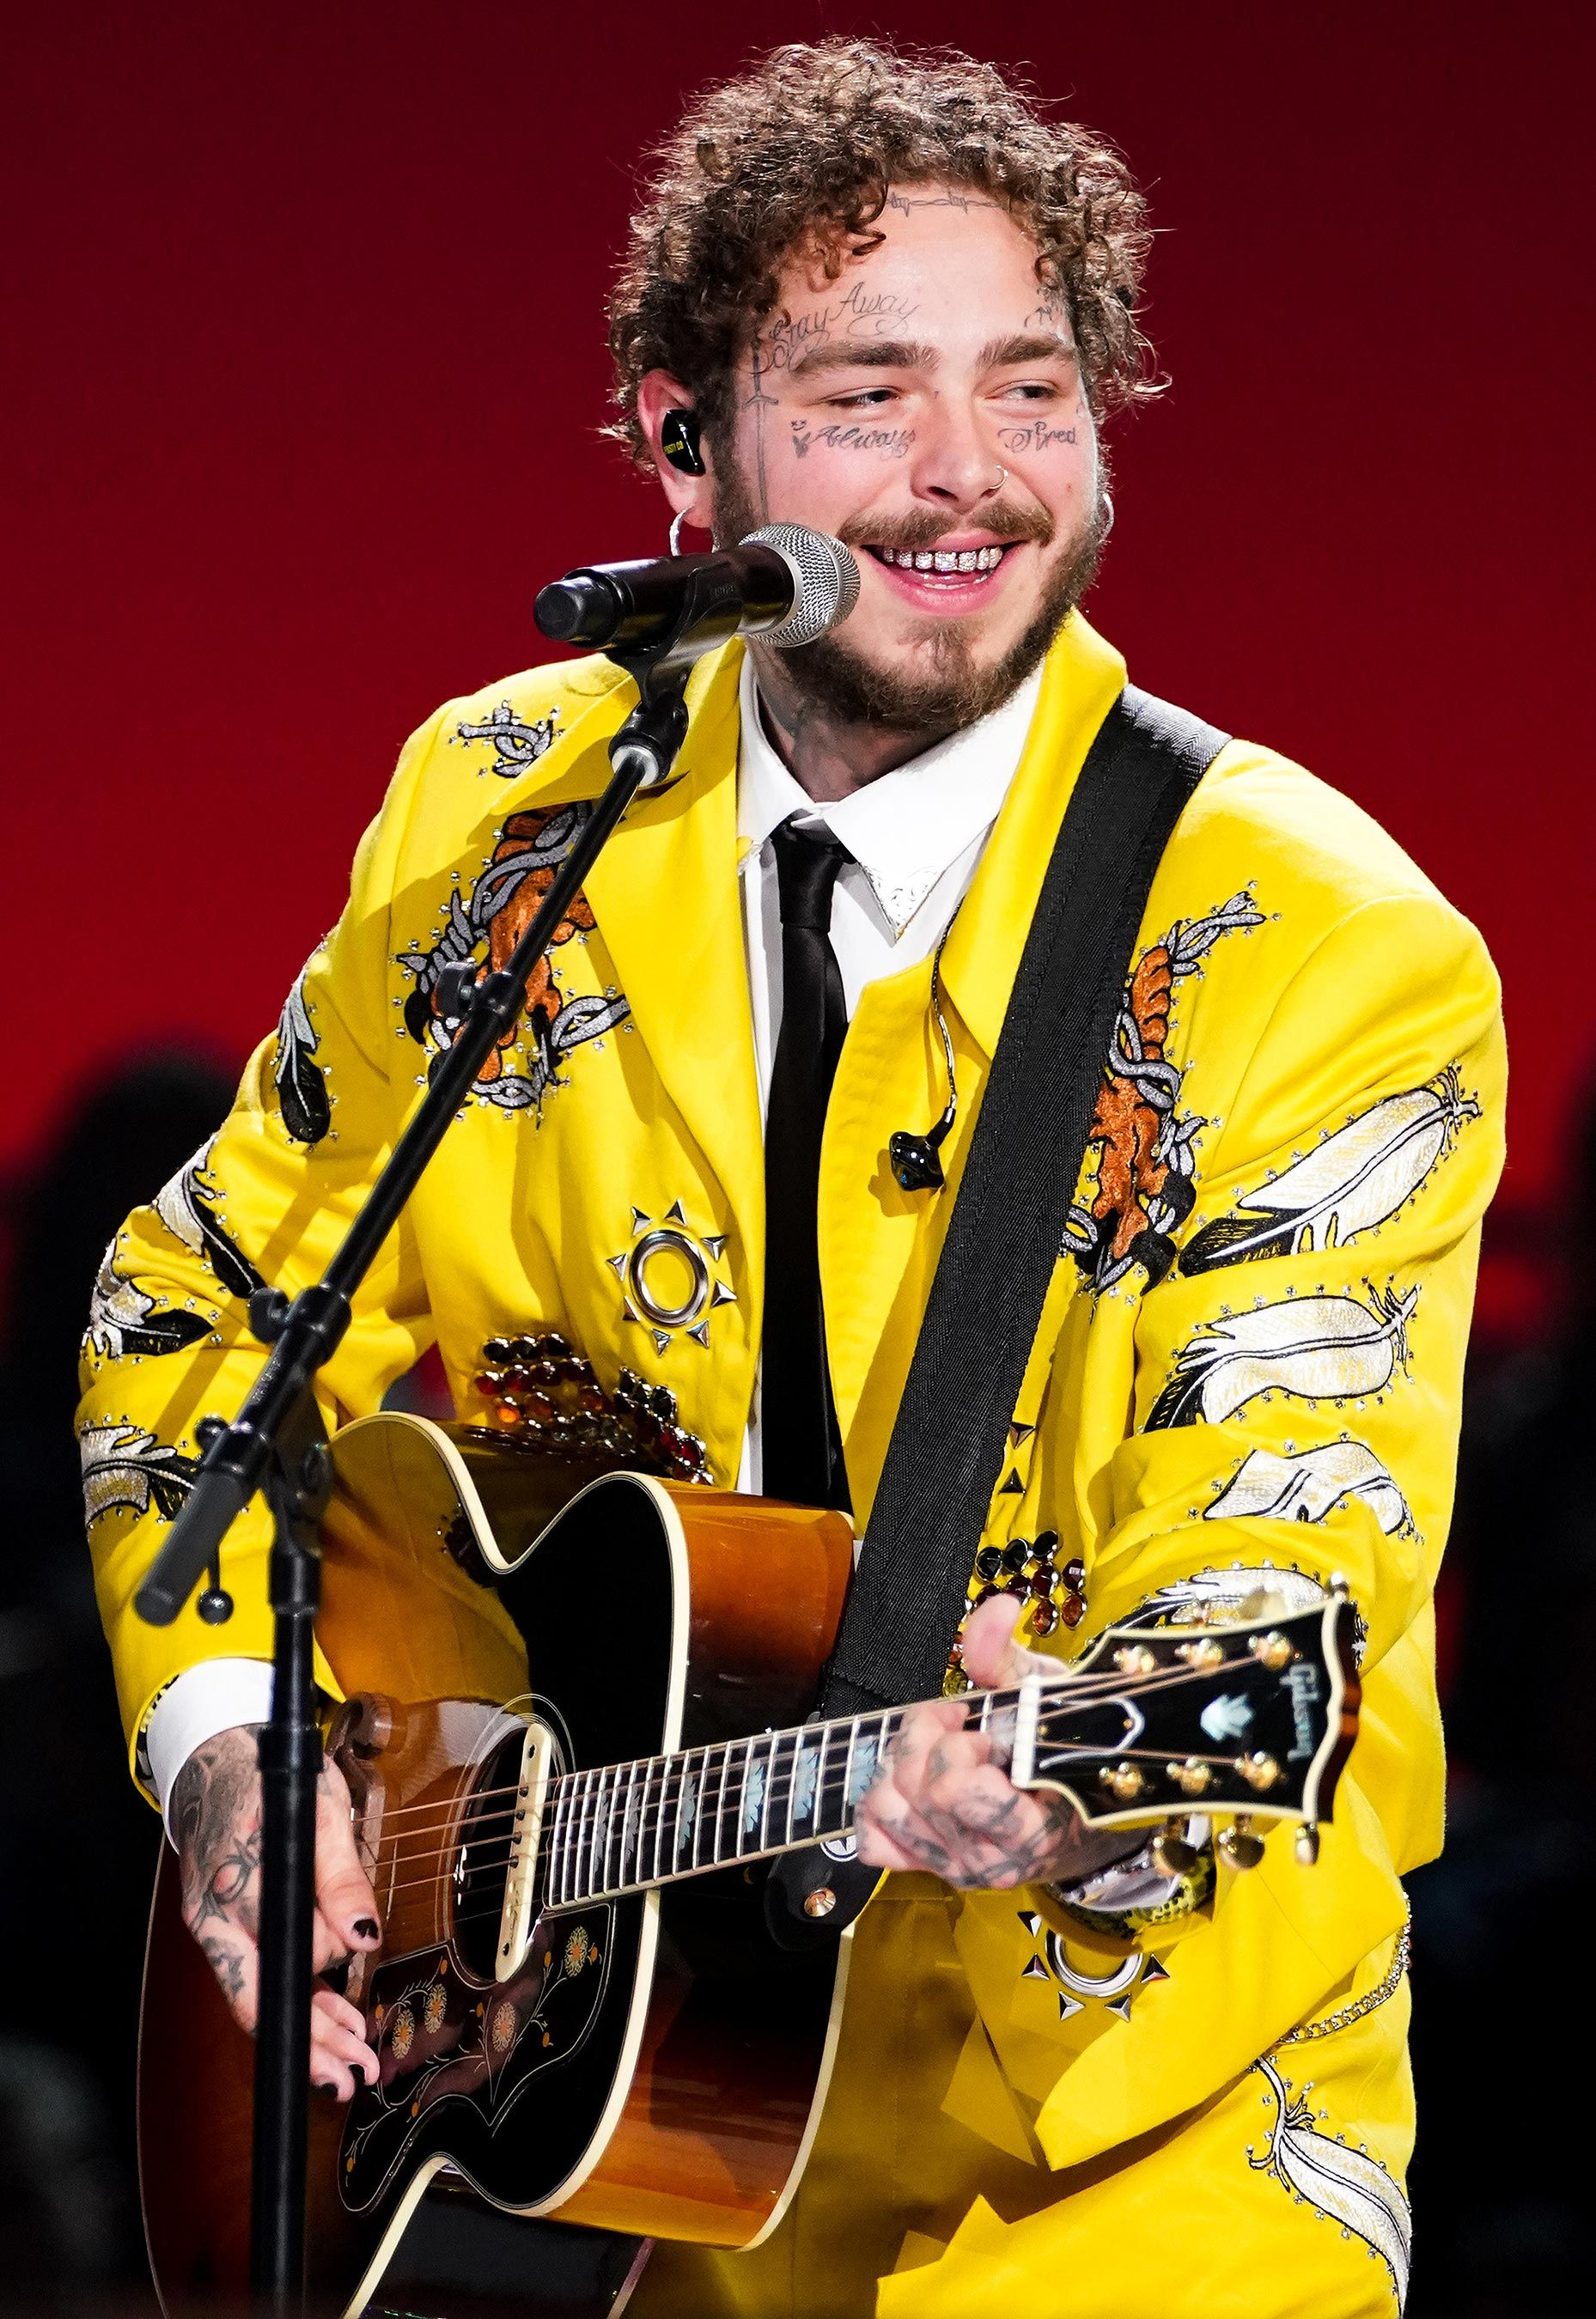 Post Malone Wears Sparkly Star-Covered Pink Suit to the 2019 Grammys: All About His Look #postmalonewallpaper